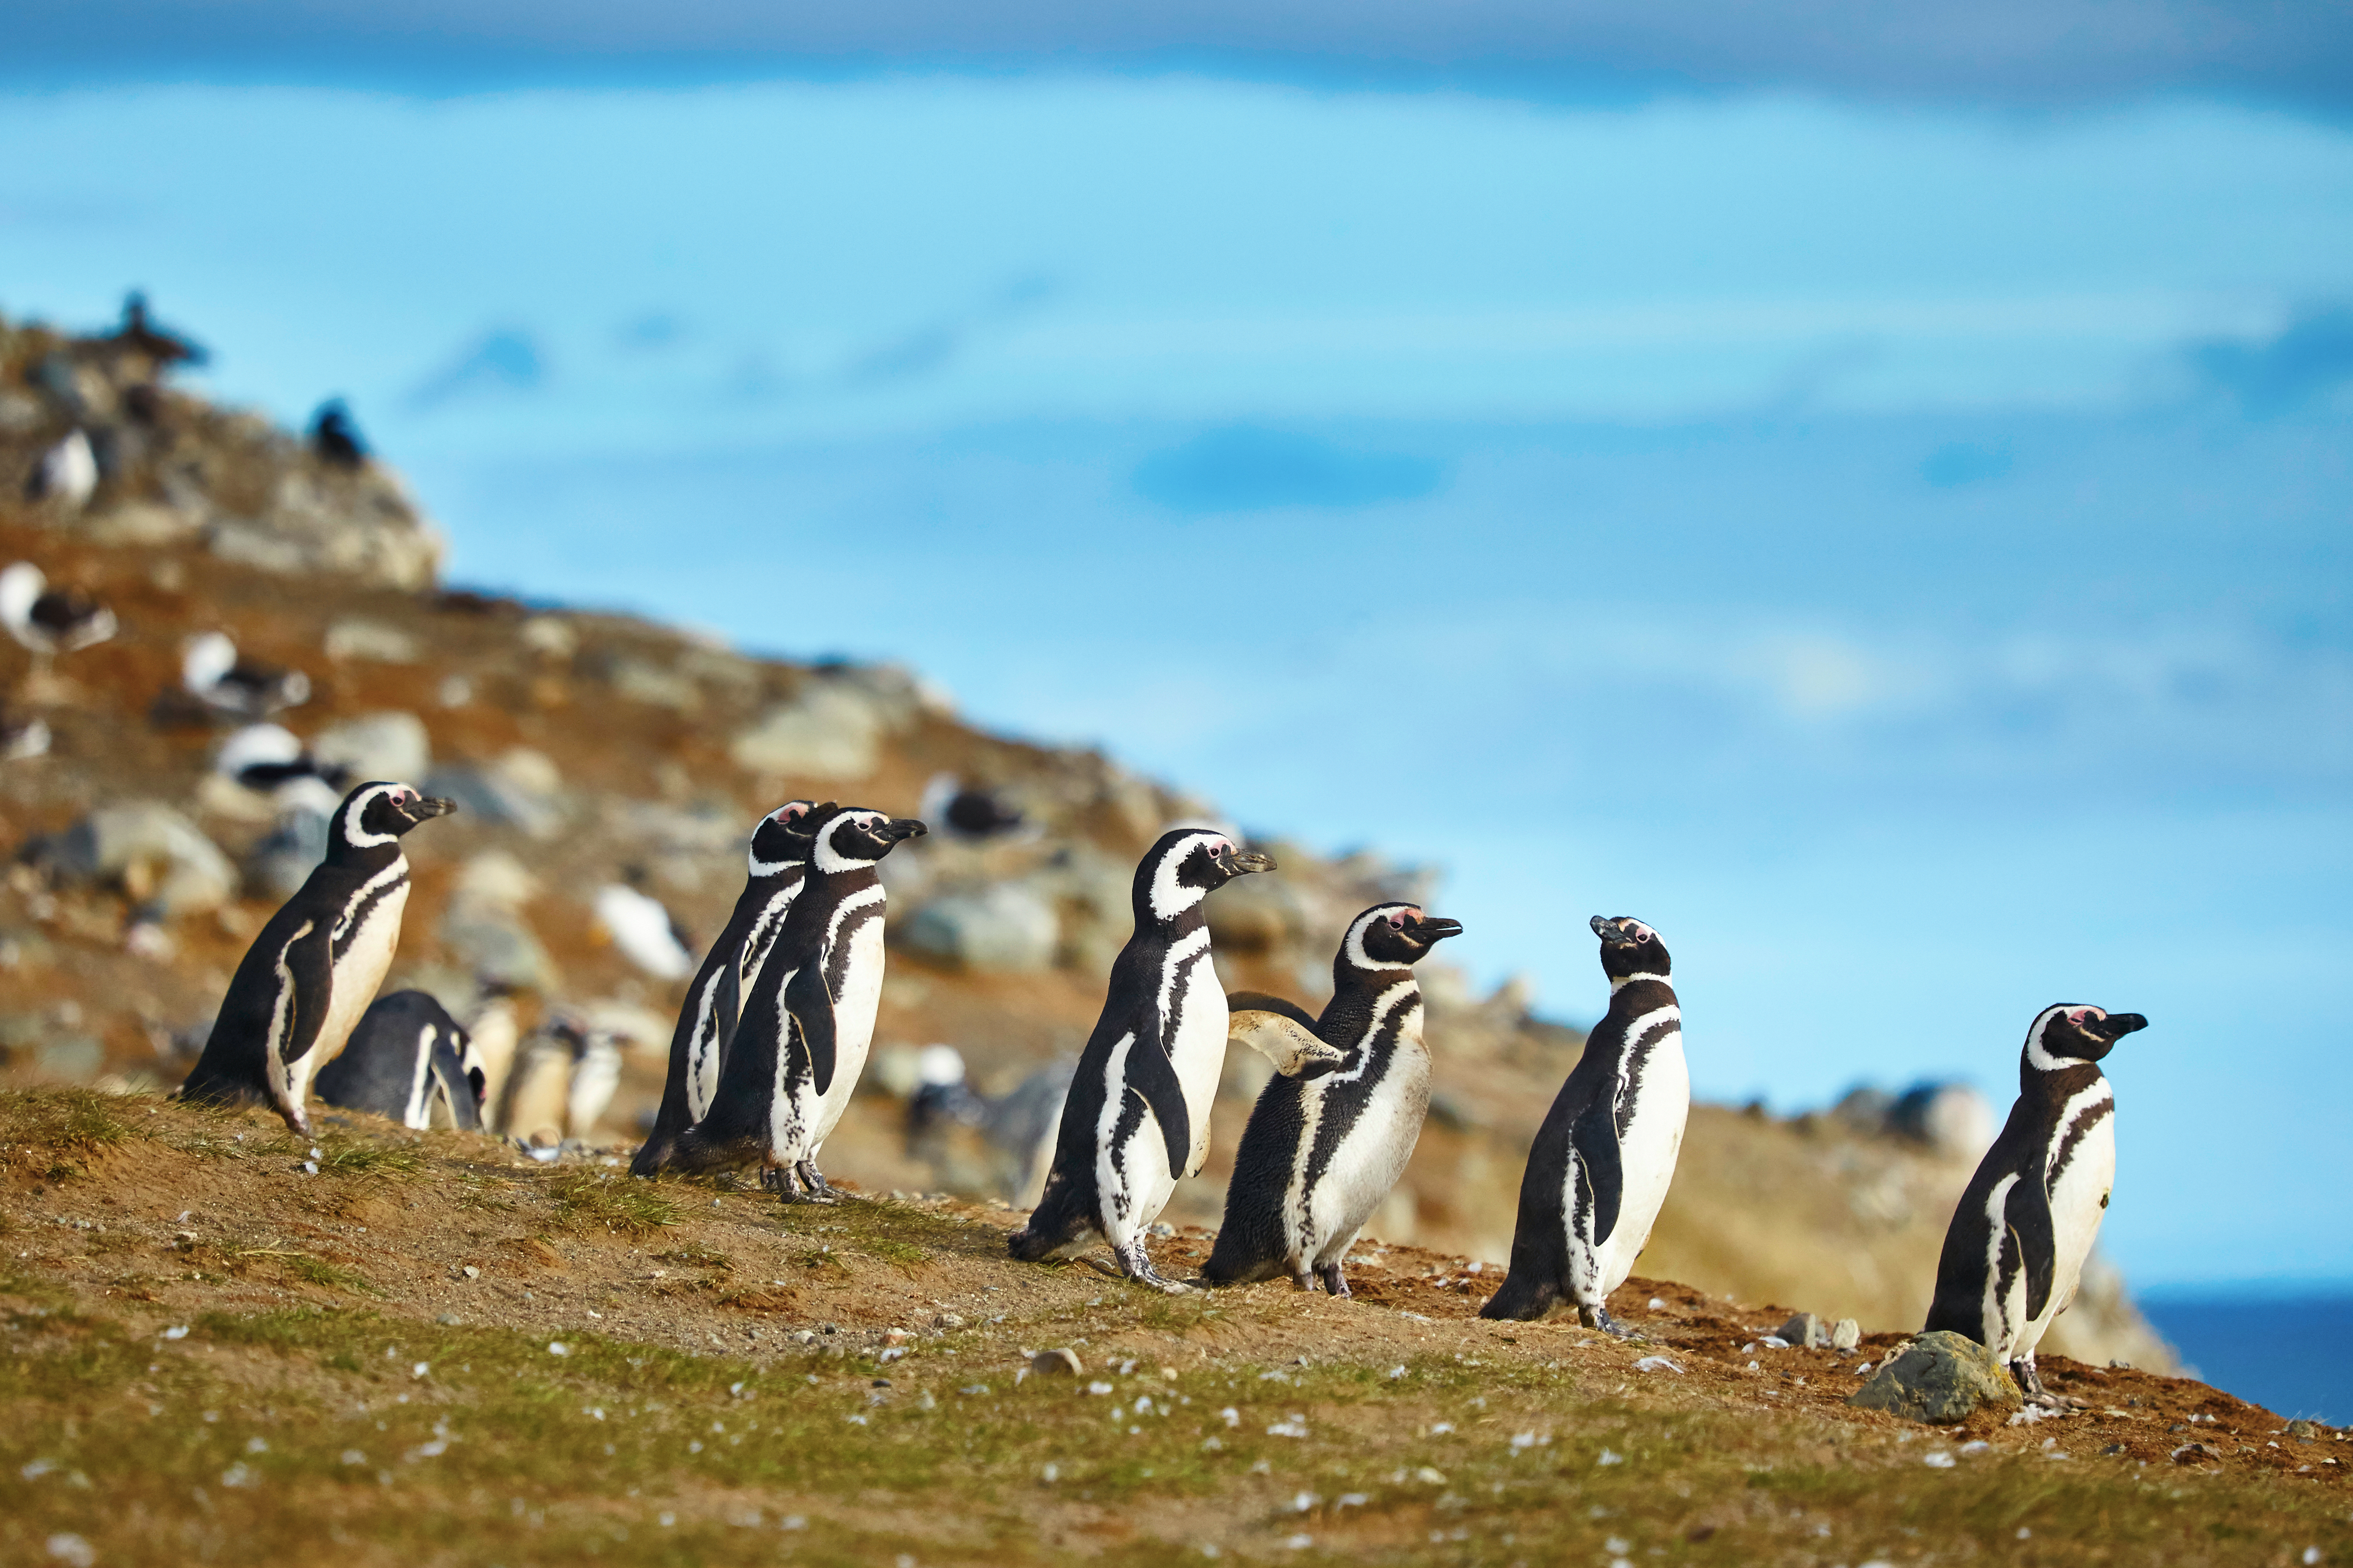 Magellanic penguins walking by the ocean on the grass in Patagonia, Chile